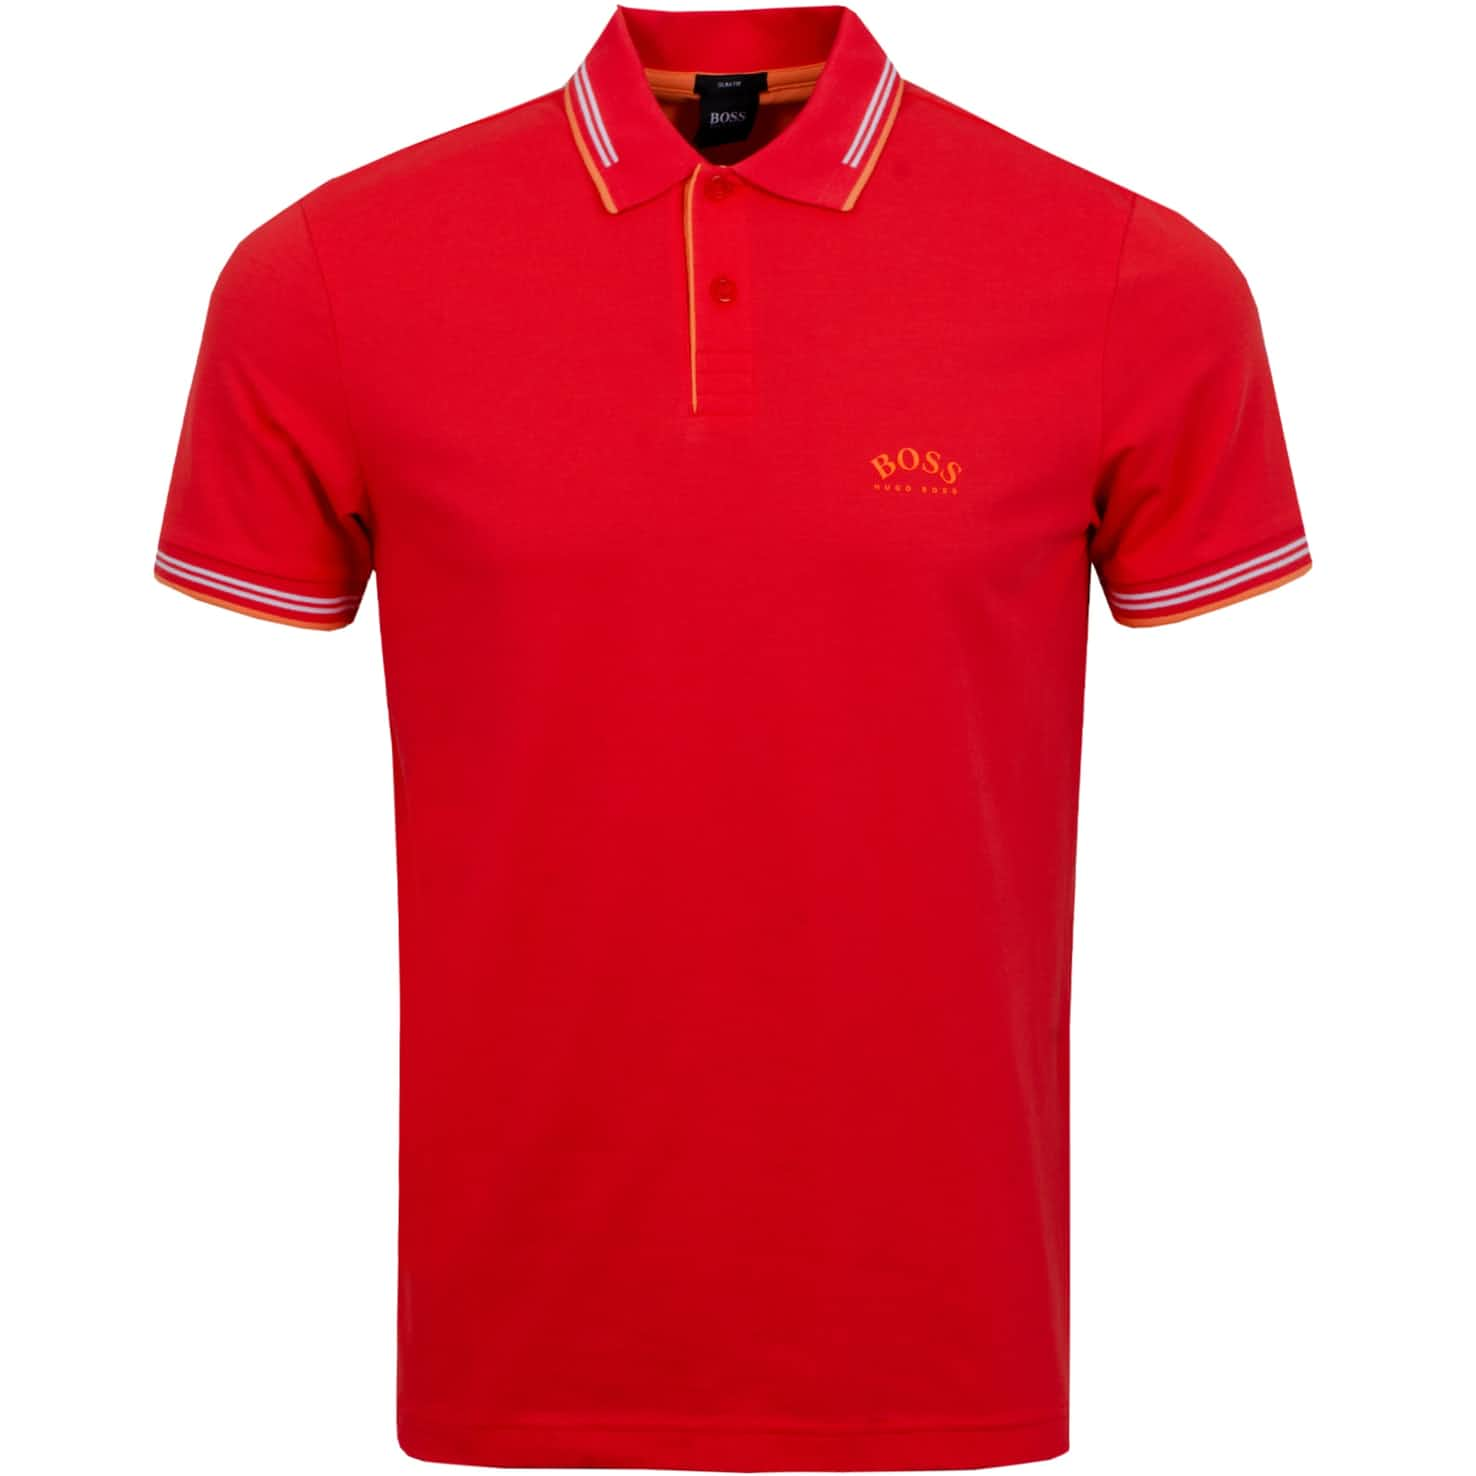 Paul Curved Bright Red - SS20